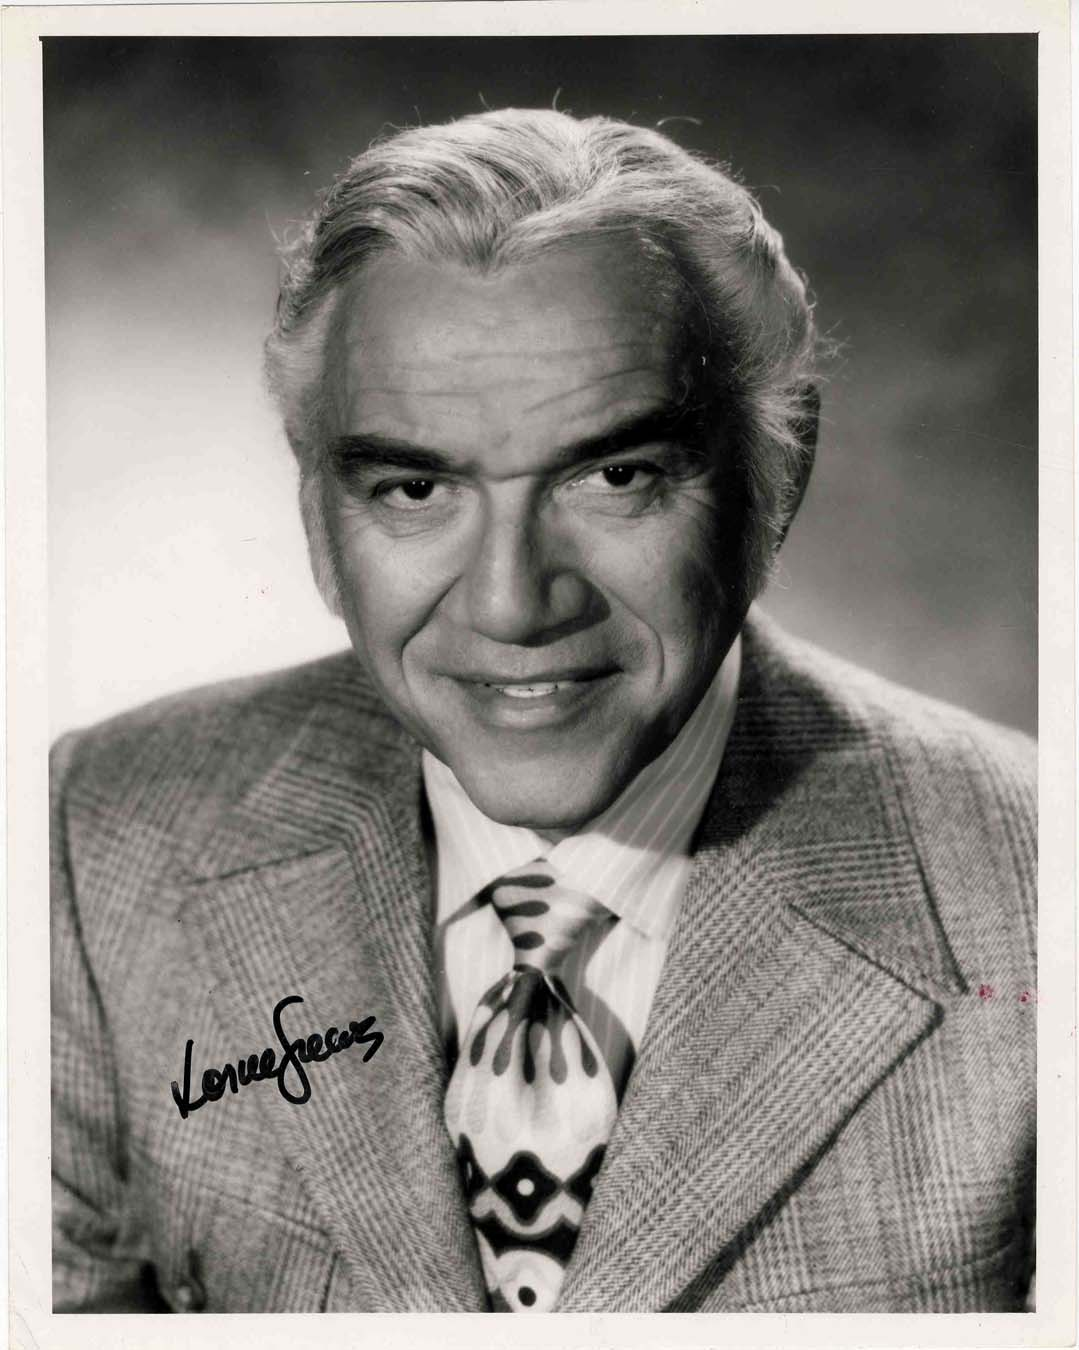 lorne greene wikilorne greene ringo lyrics, lorne greene i'm a gun lyrics, lorne greene ringo, lorne greene i'm a gun, lorne greene ringo youtube, lorne greene, lorne greene bonanza, lorne greene death, lorne greene wiki, lorne greene fox news, lorne greene song ringo, lorne greene net worth, lorne greene battlestar galactica, lorne greene grab, lorne greene cuando murio, lorne greene's new wilderness, lorne greene imdb, lorne greene sings bonanza, lorne greene riders in the sky, lorne greene death scene